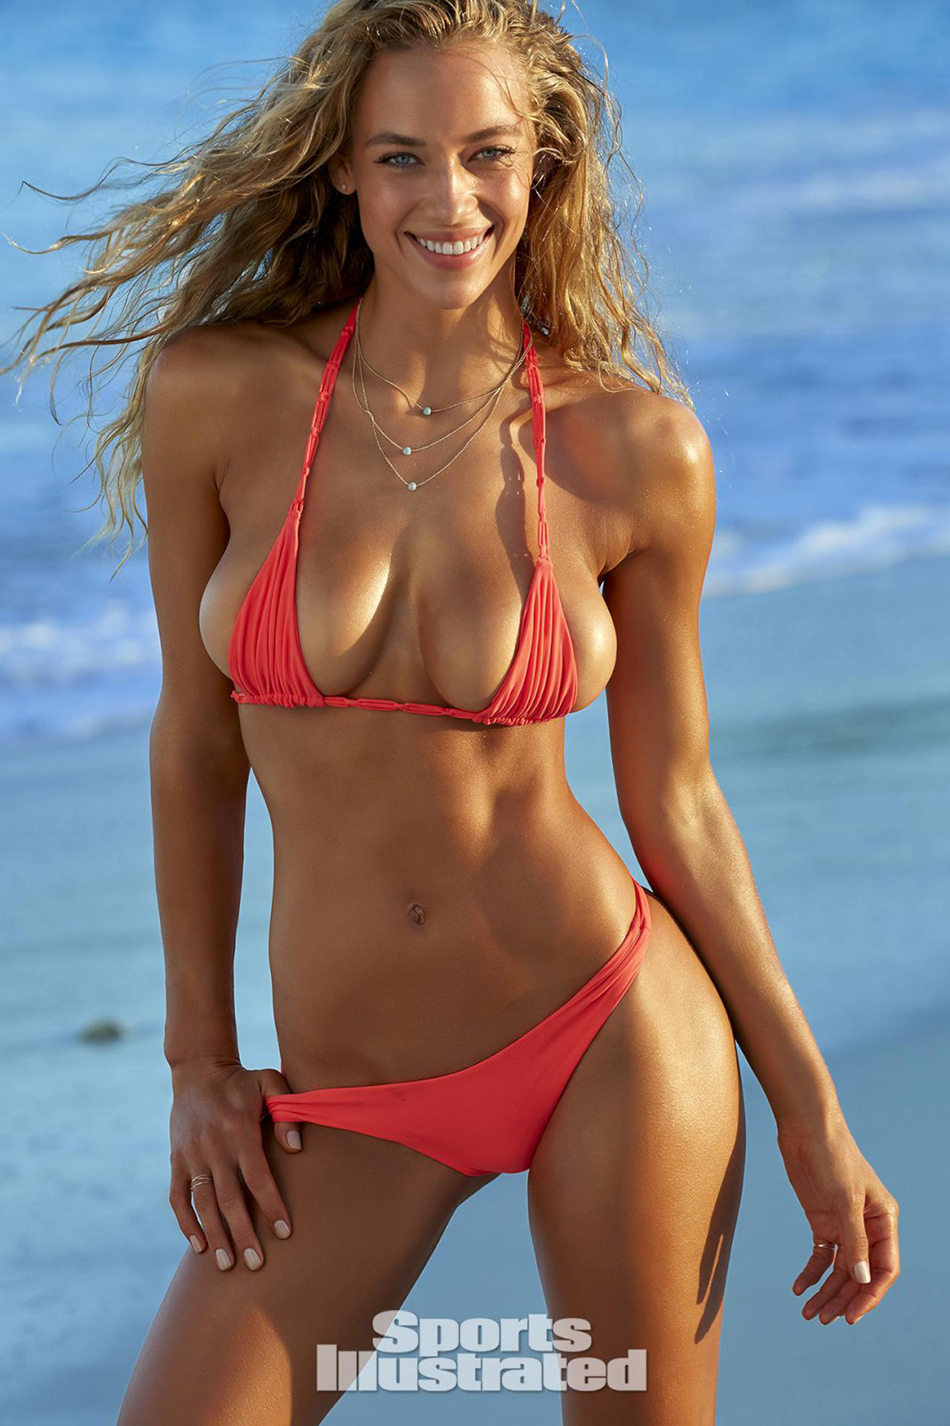 Topic, Sports illustrated bikini videos does